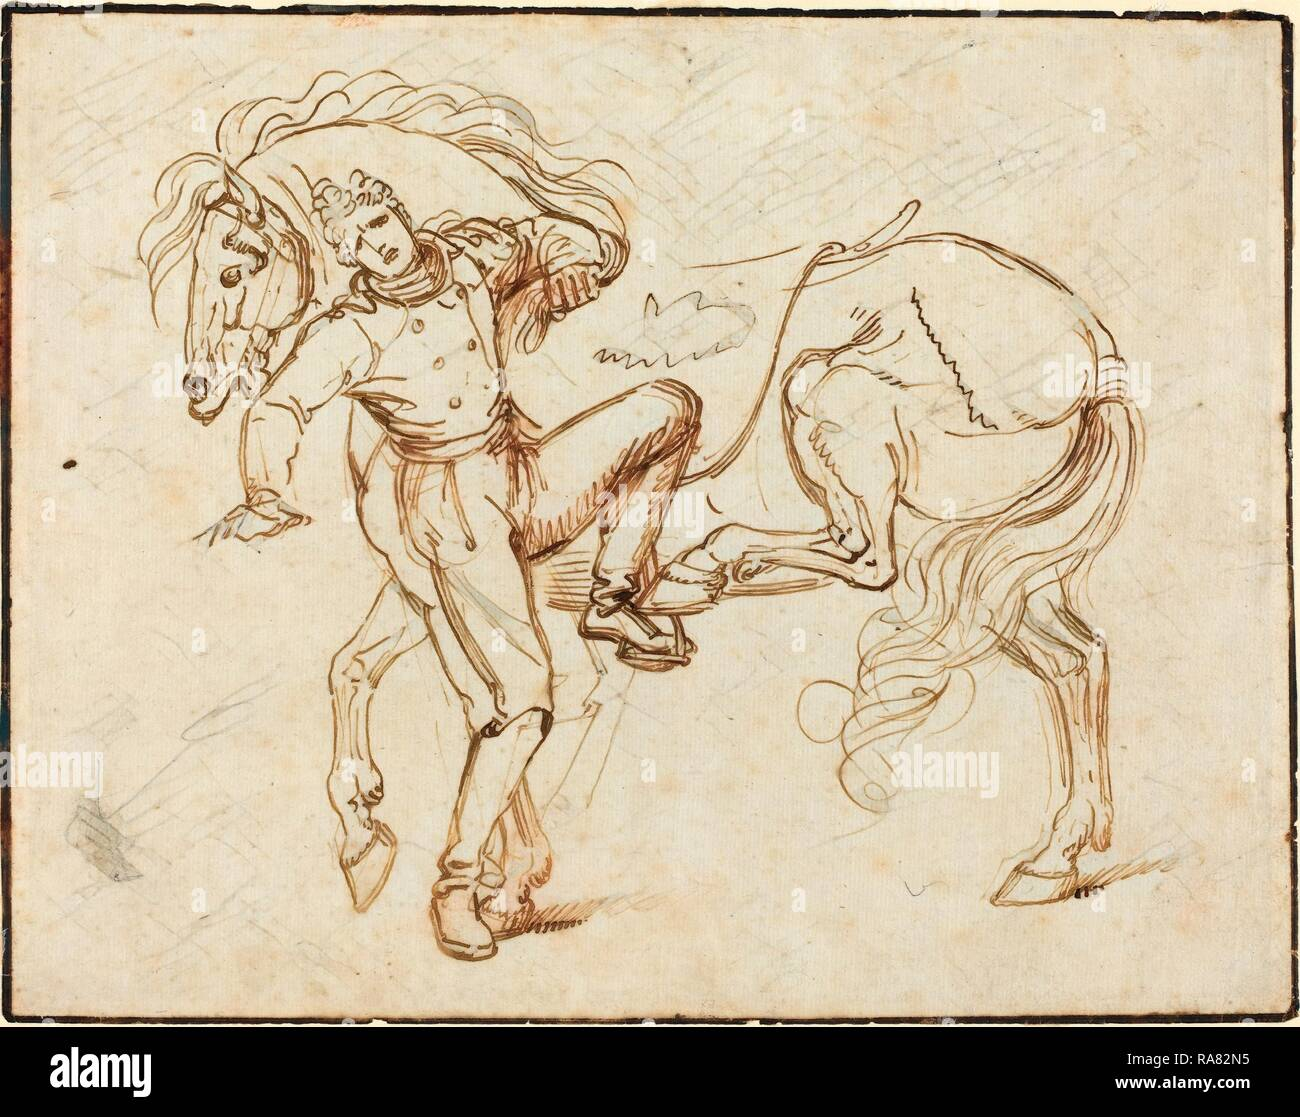 Luigi Sabatelli I (Italian, 1772 - 1850), Cavalryman Mounting a Horse, pen and brown ink on laid paper. Reimagined - Stock Image